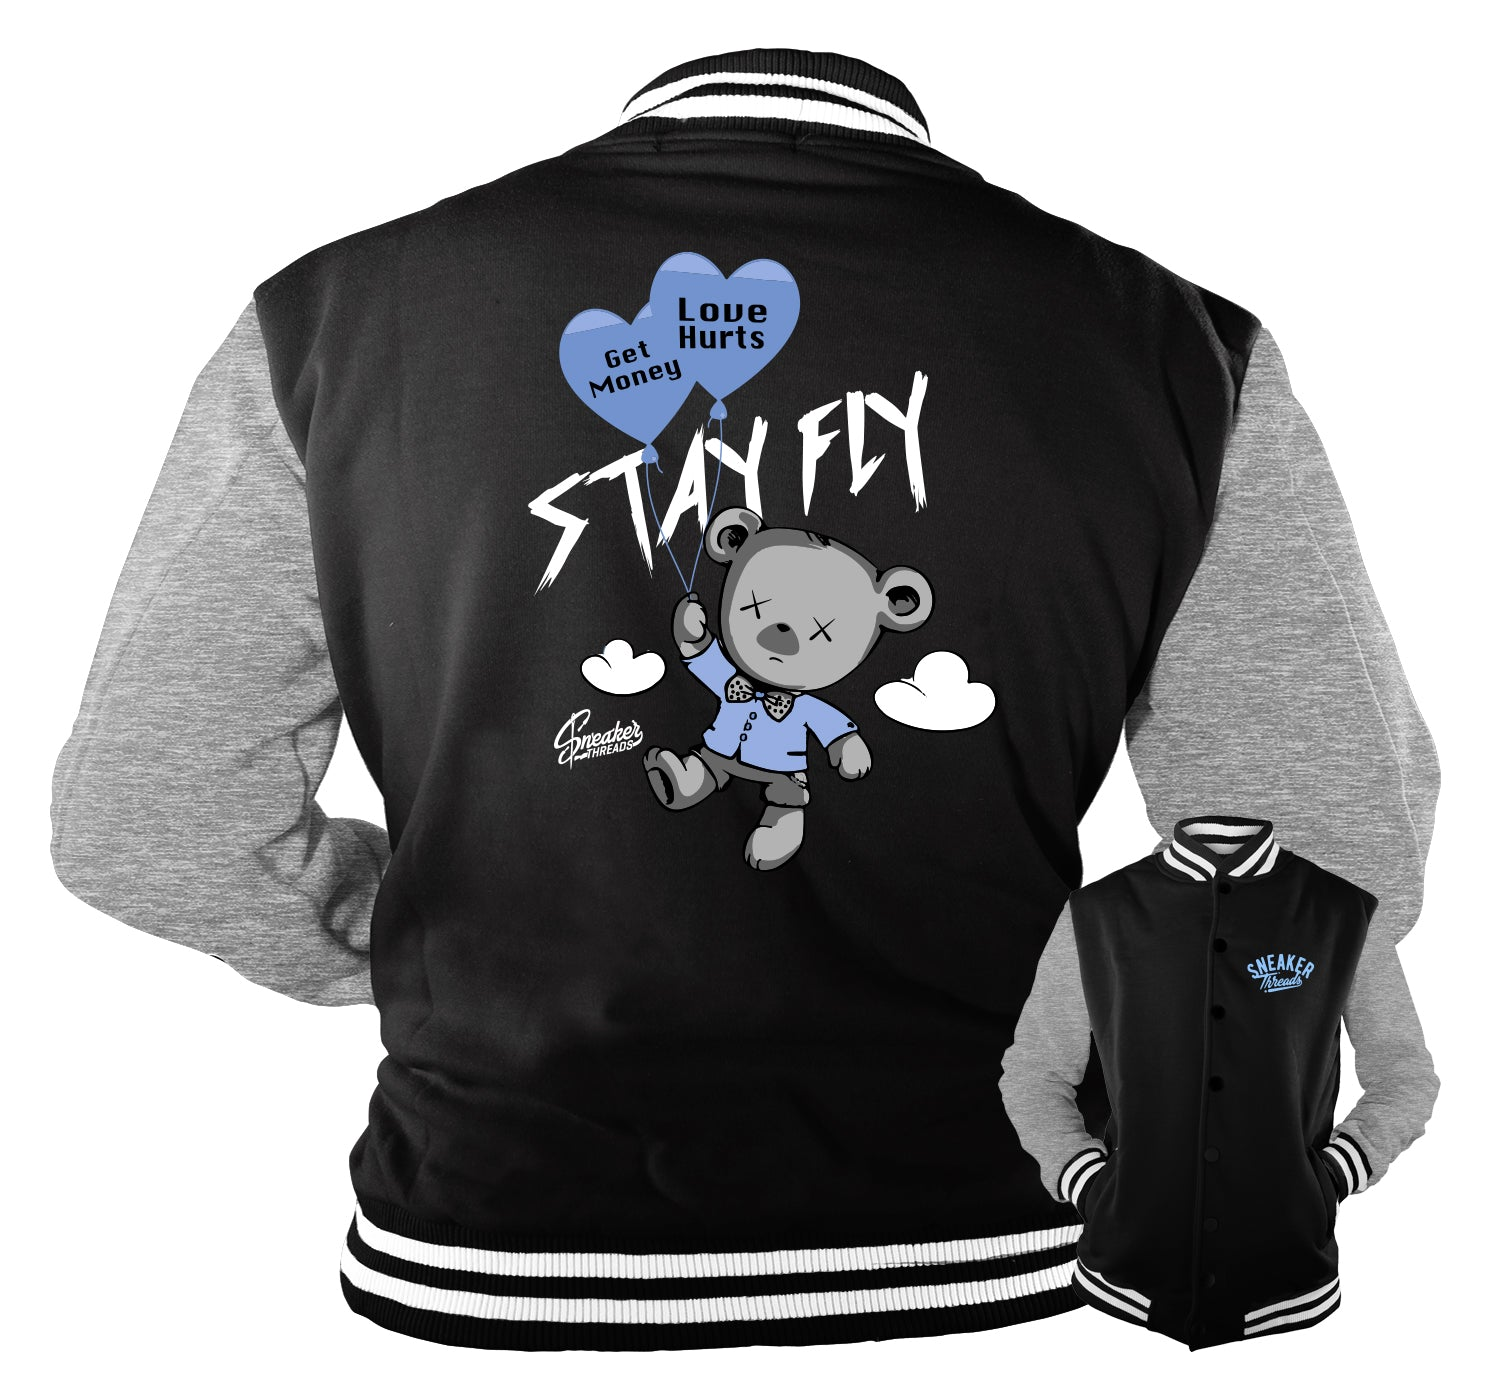 Jordan 3 UNC Jacket - Money Over Love - Black